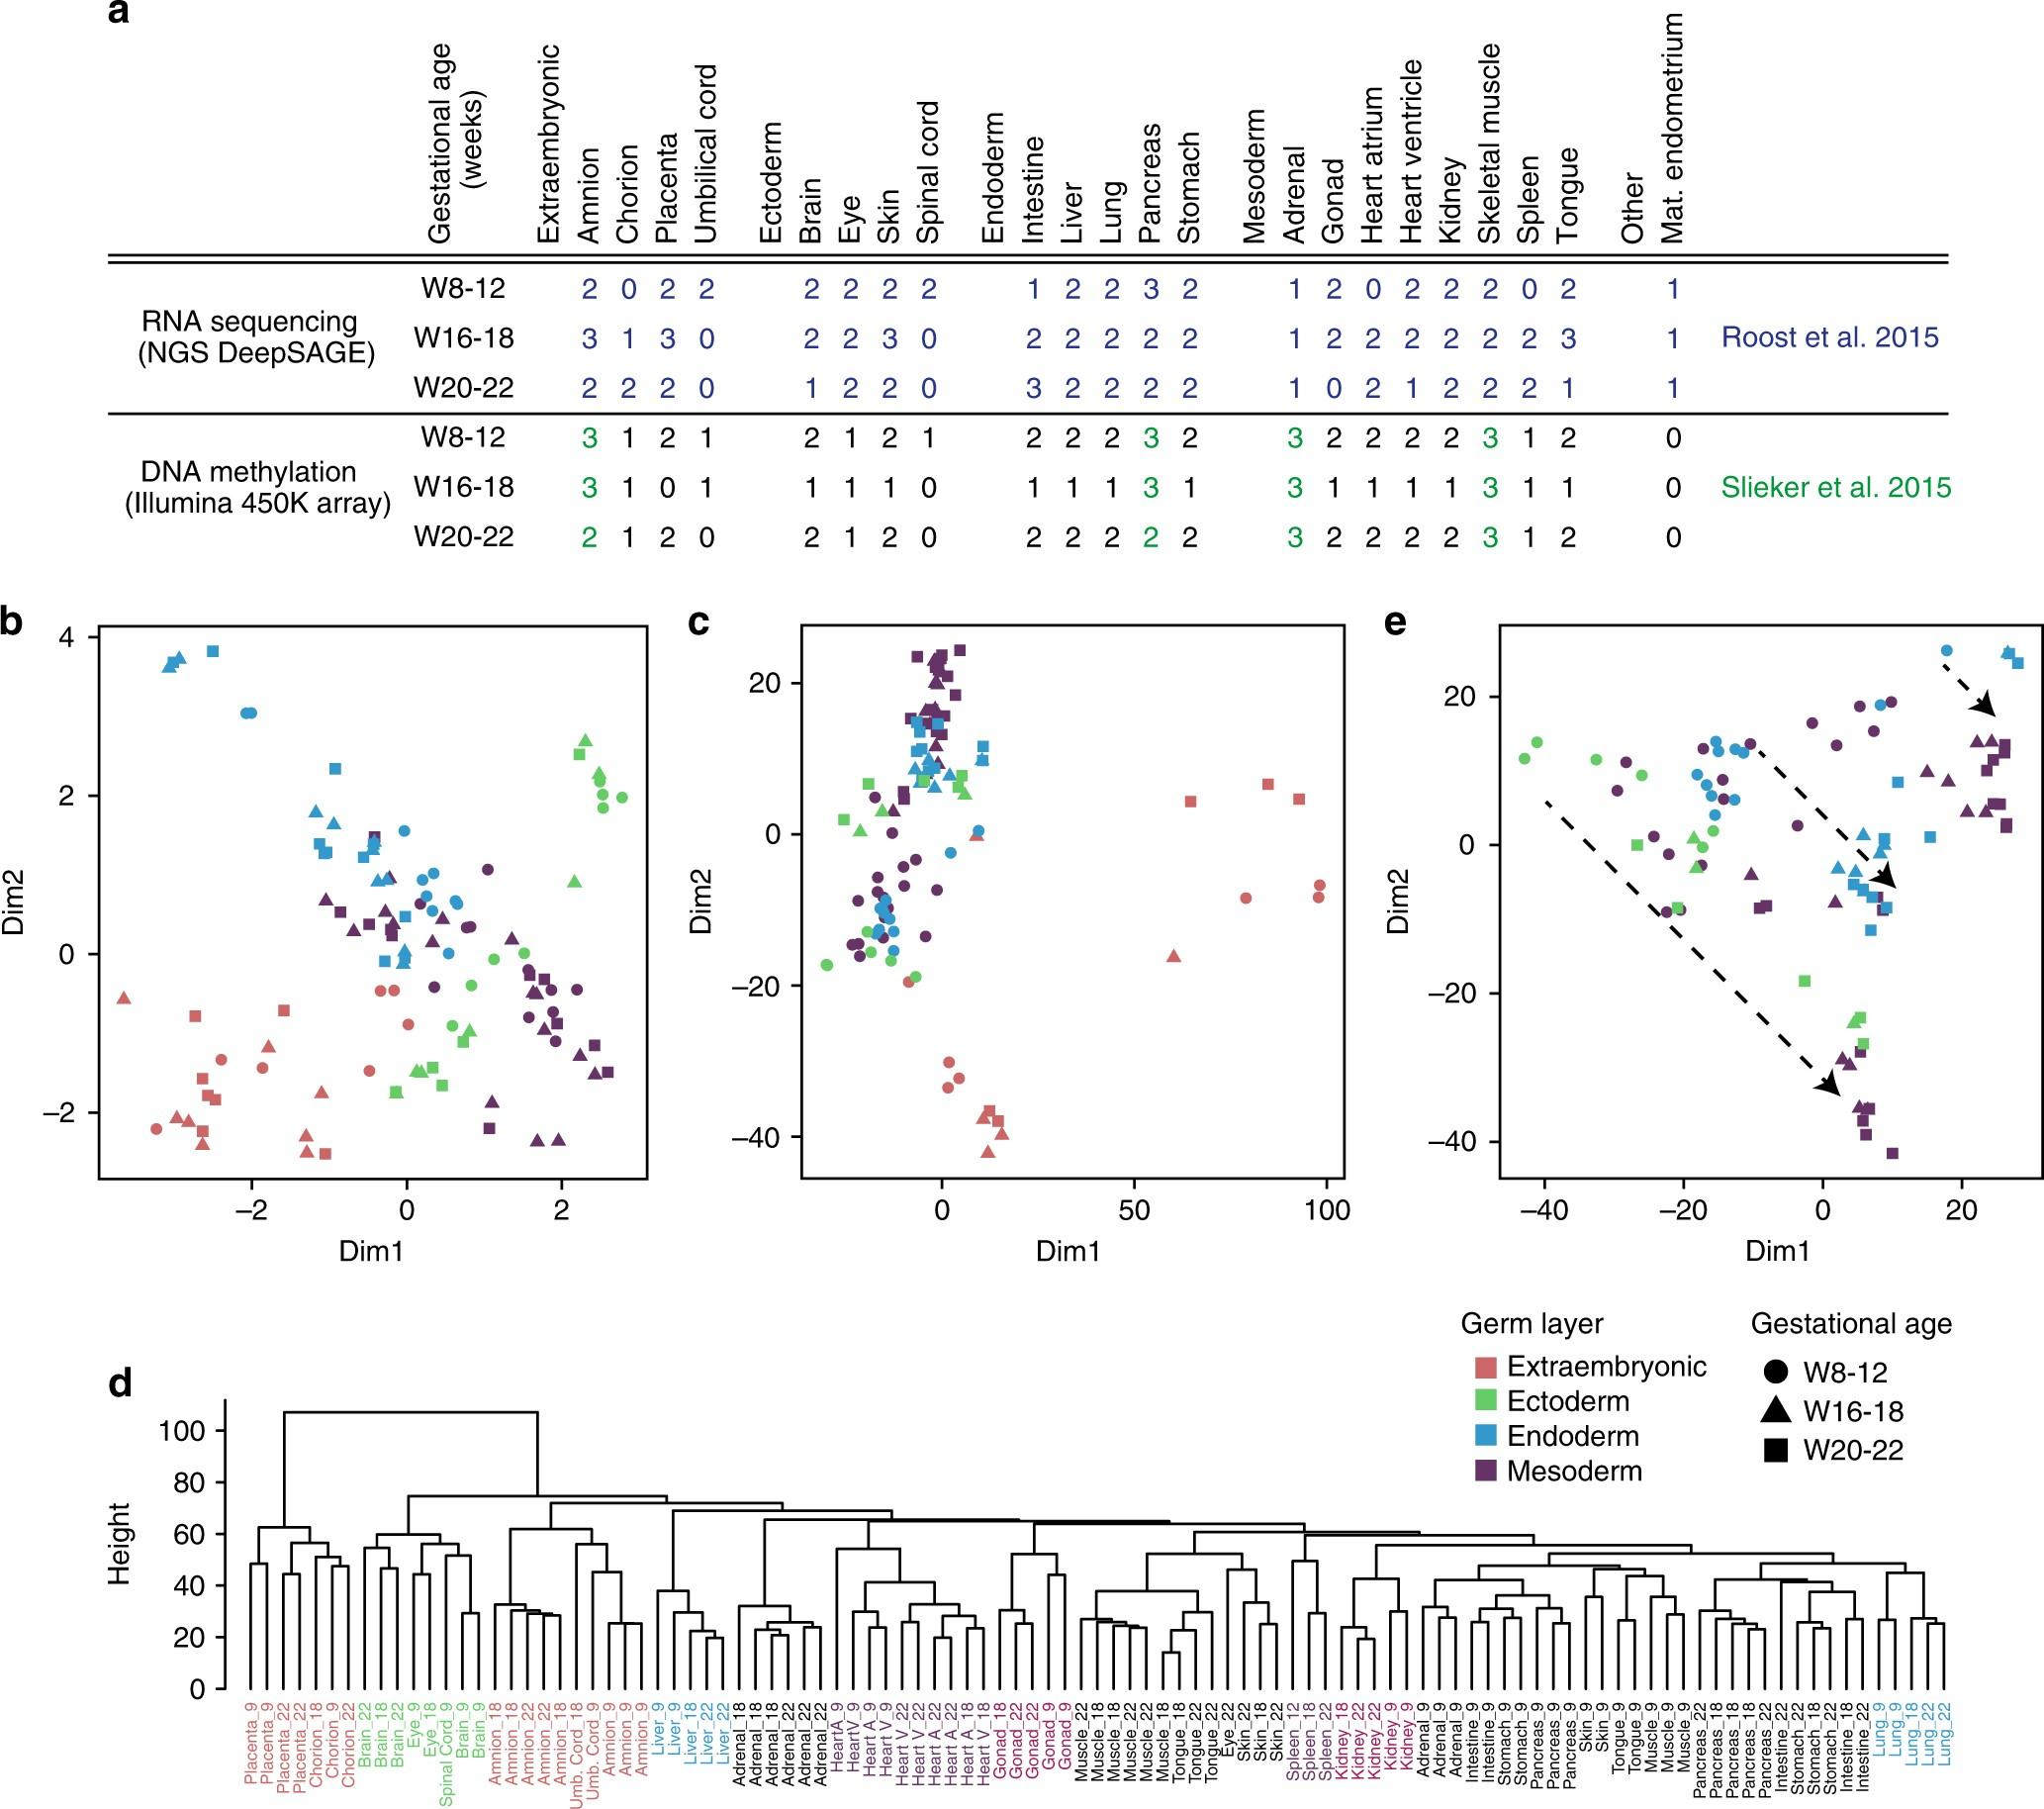 DNA methylation and transcriptional trajectories during